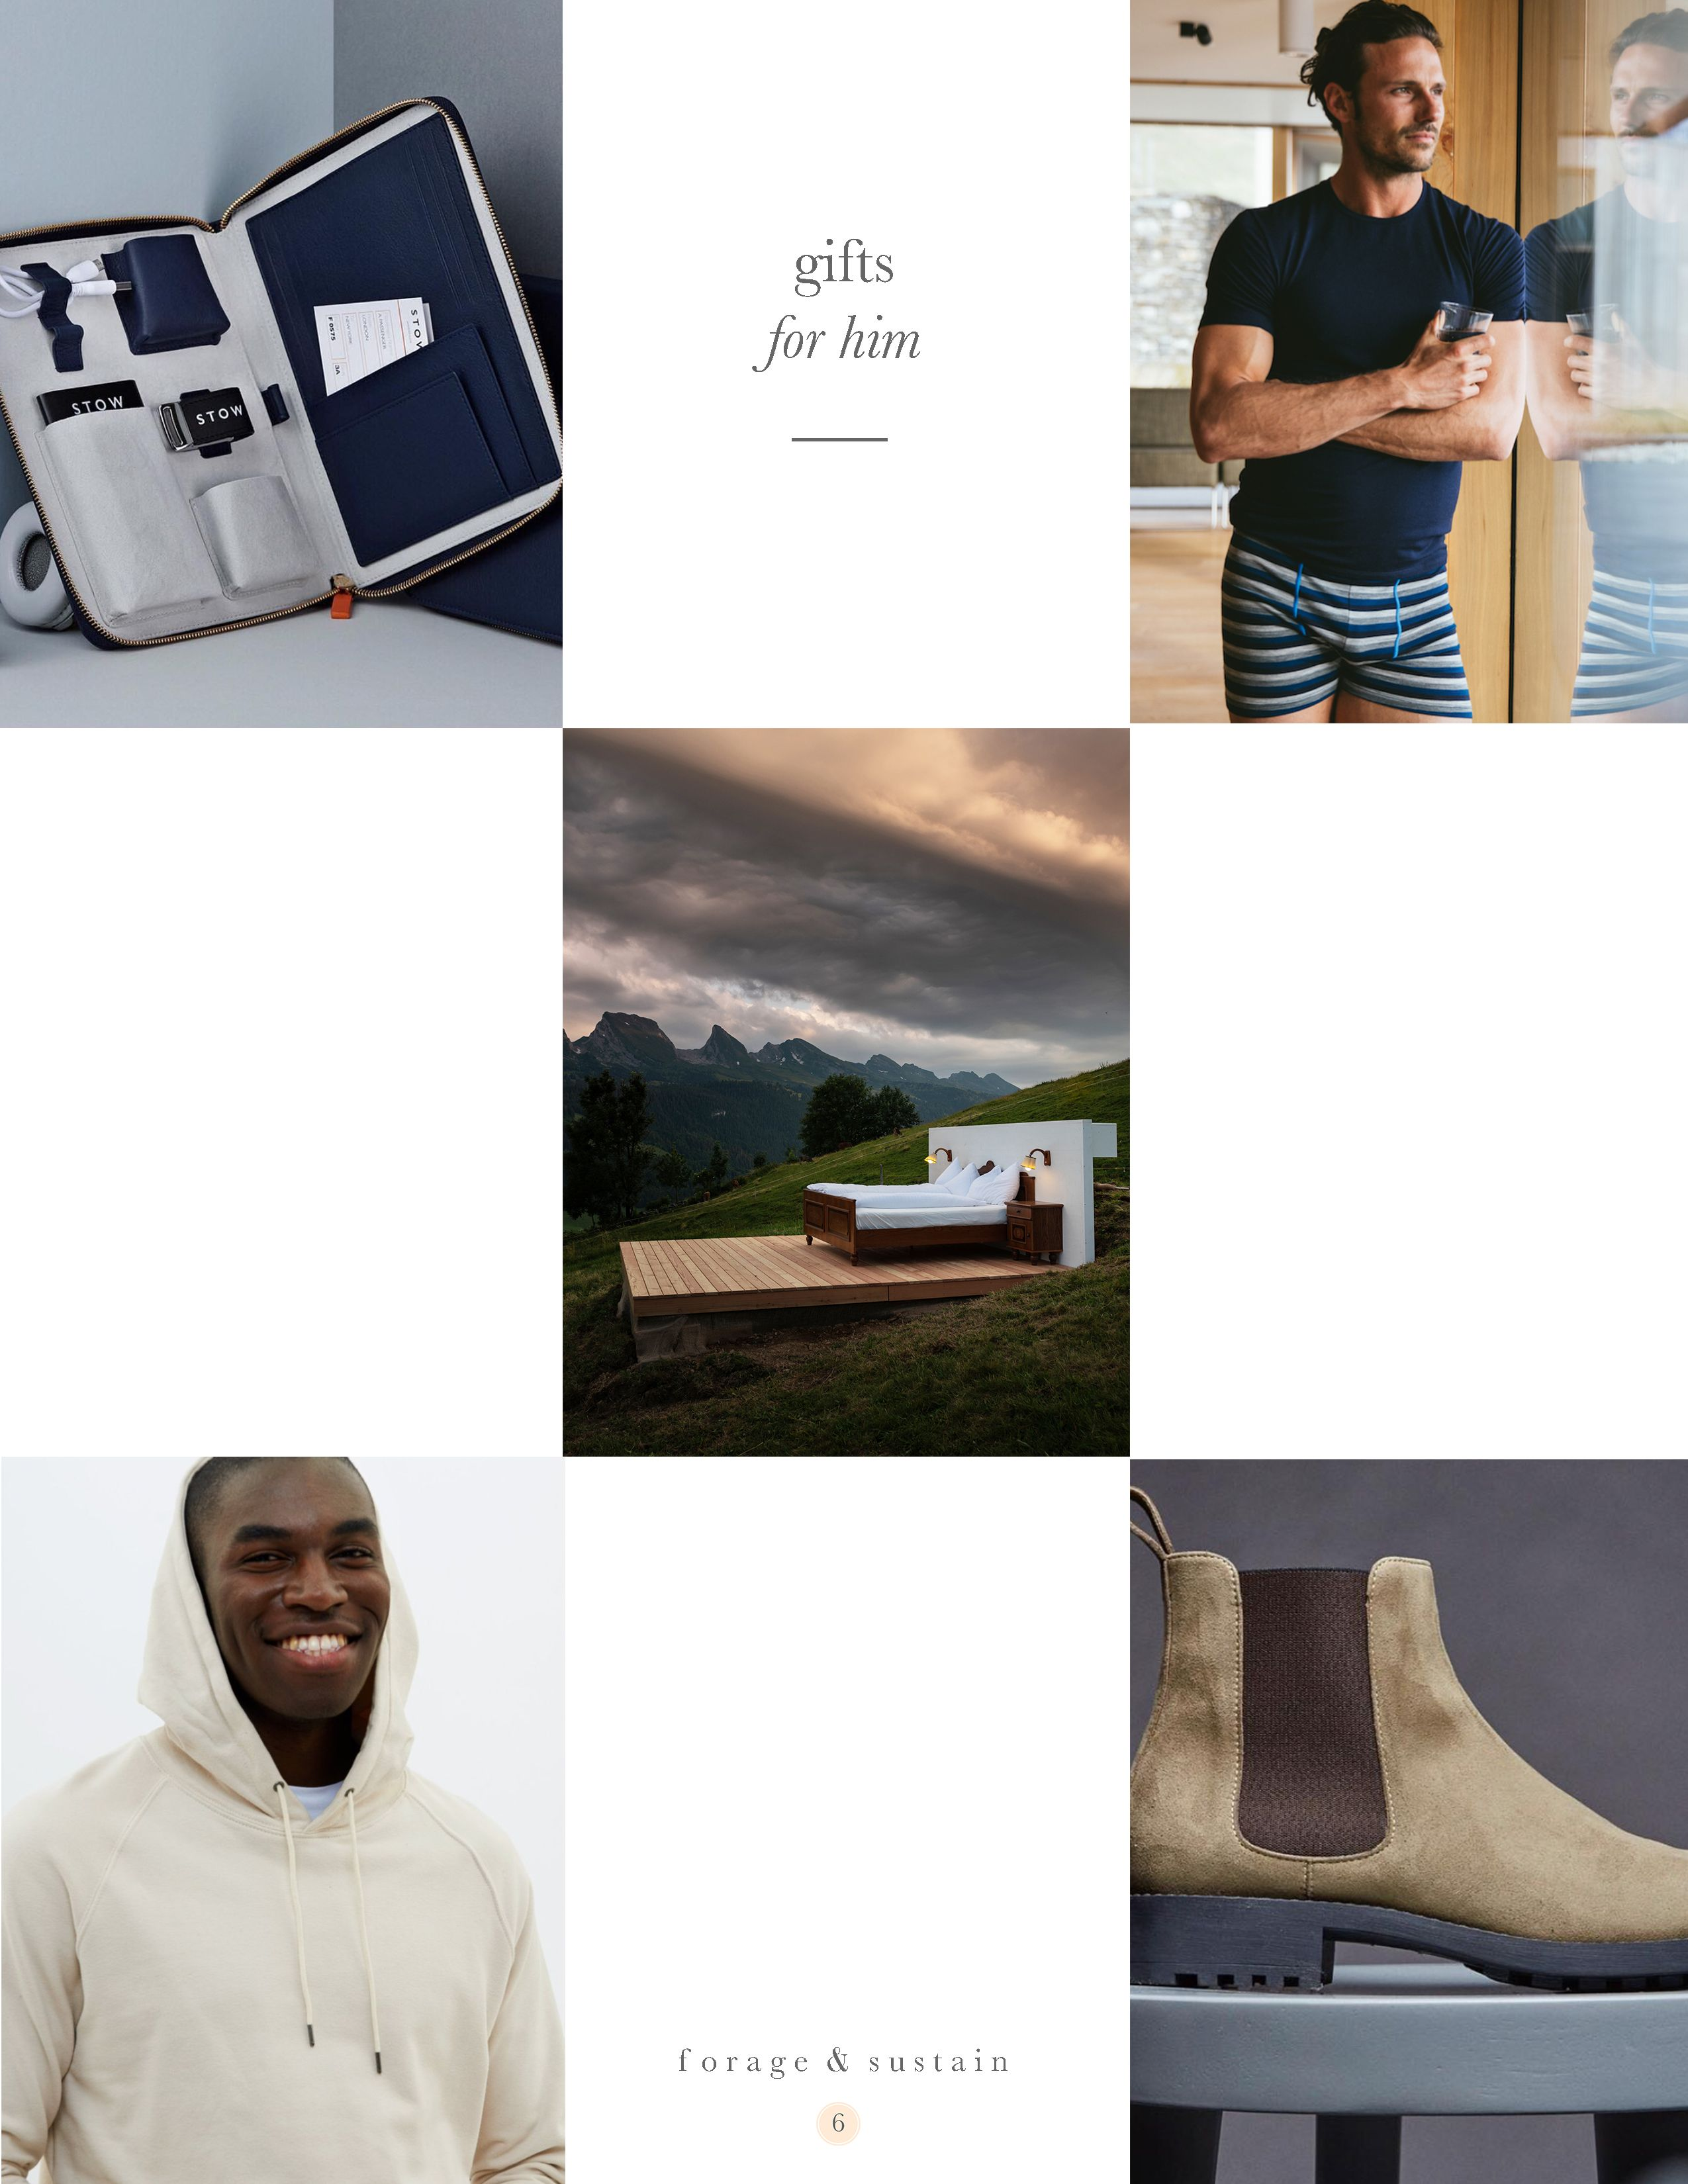 357ce95cd5 5 Sustainable Gift Ideas for Him in 2018 | Forage & Sustain ...